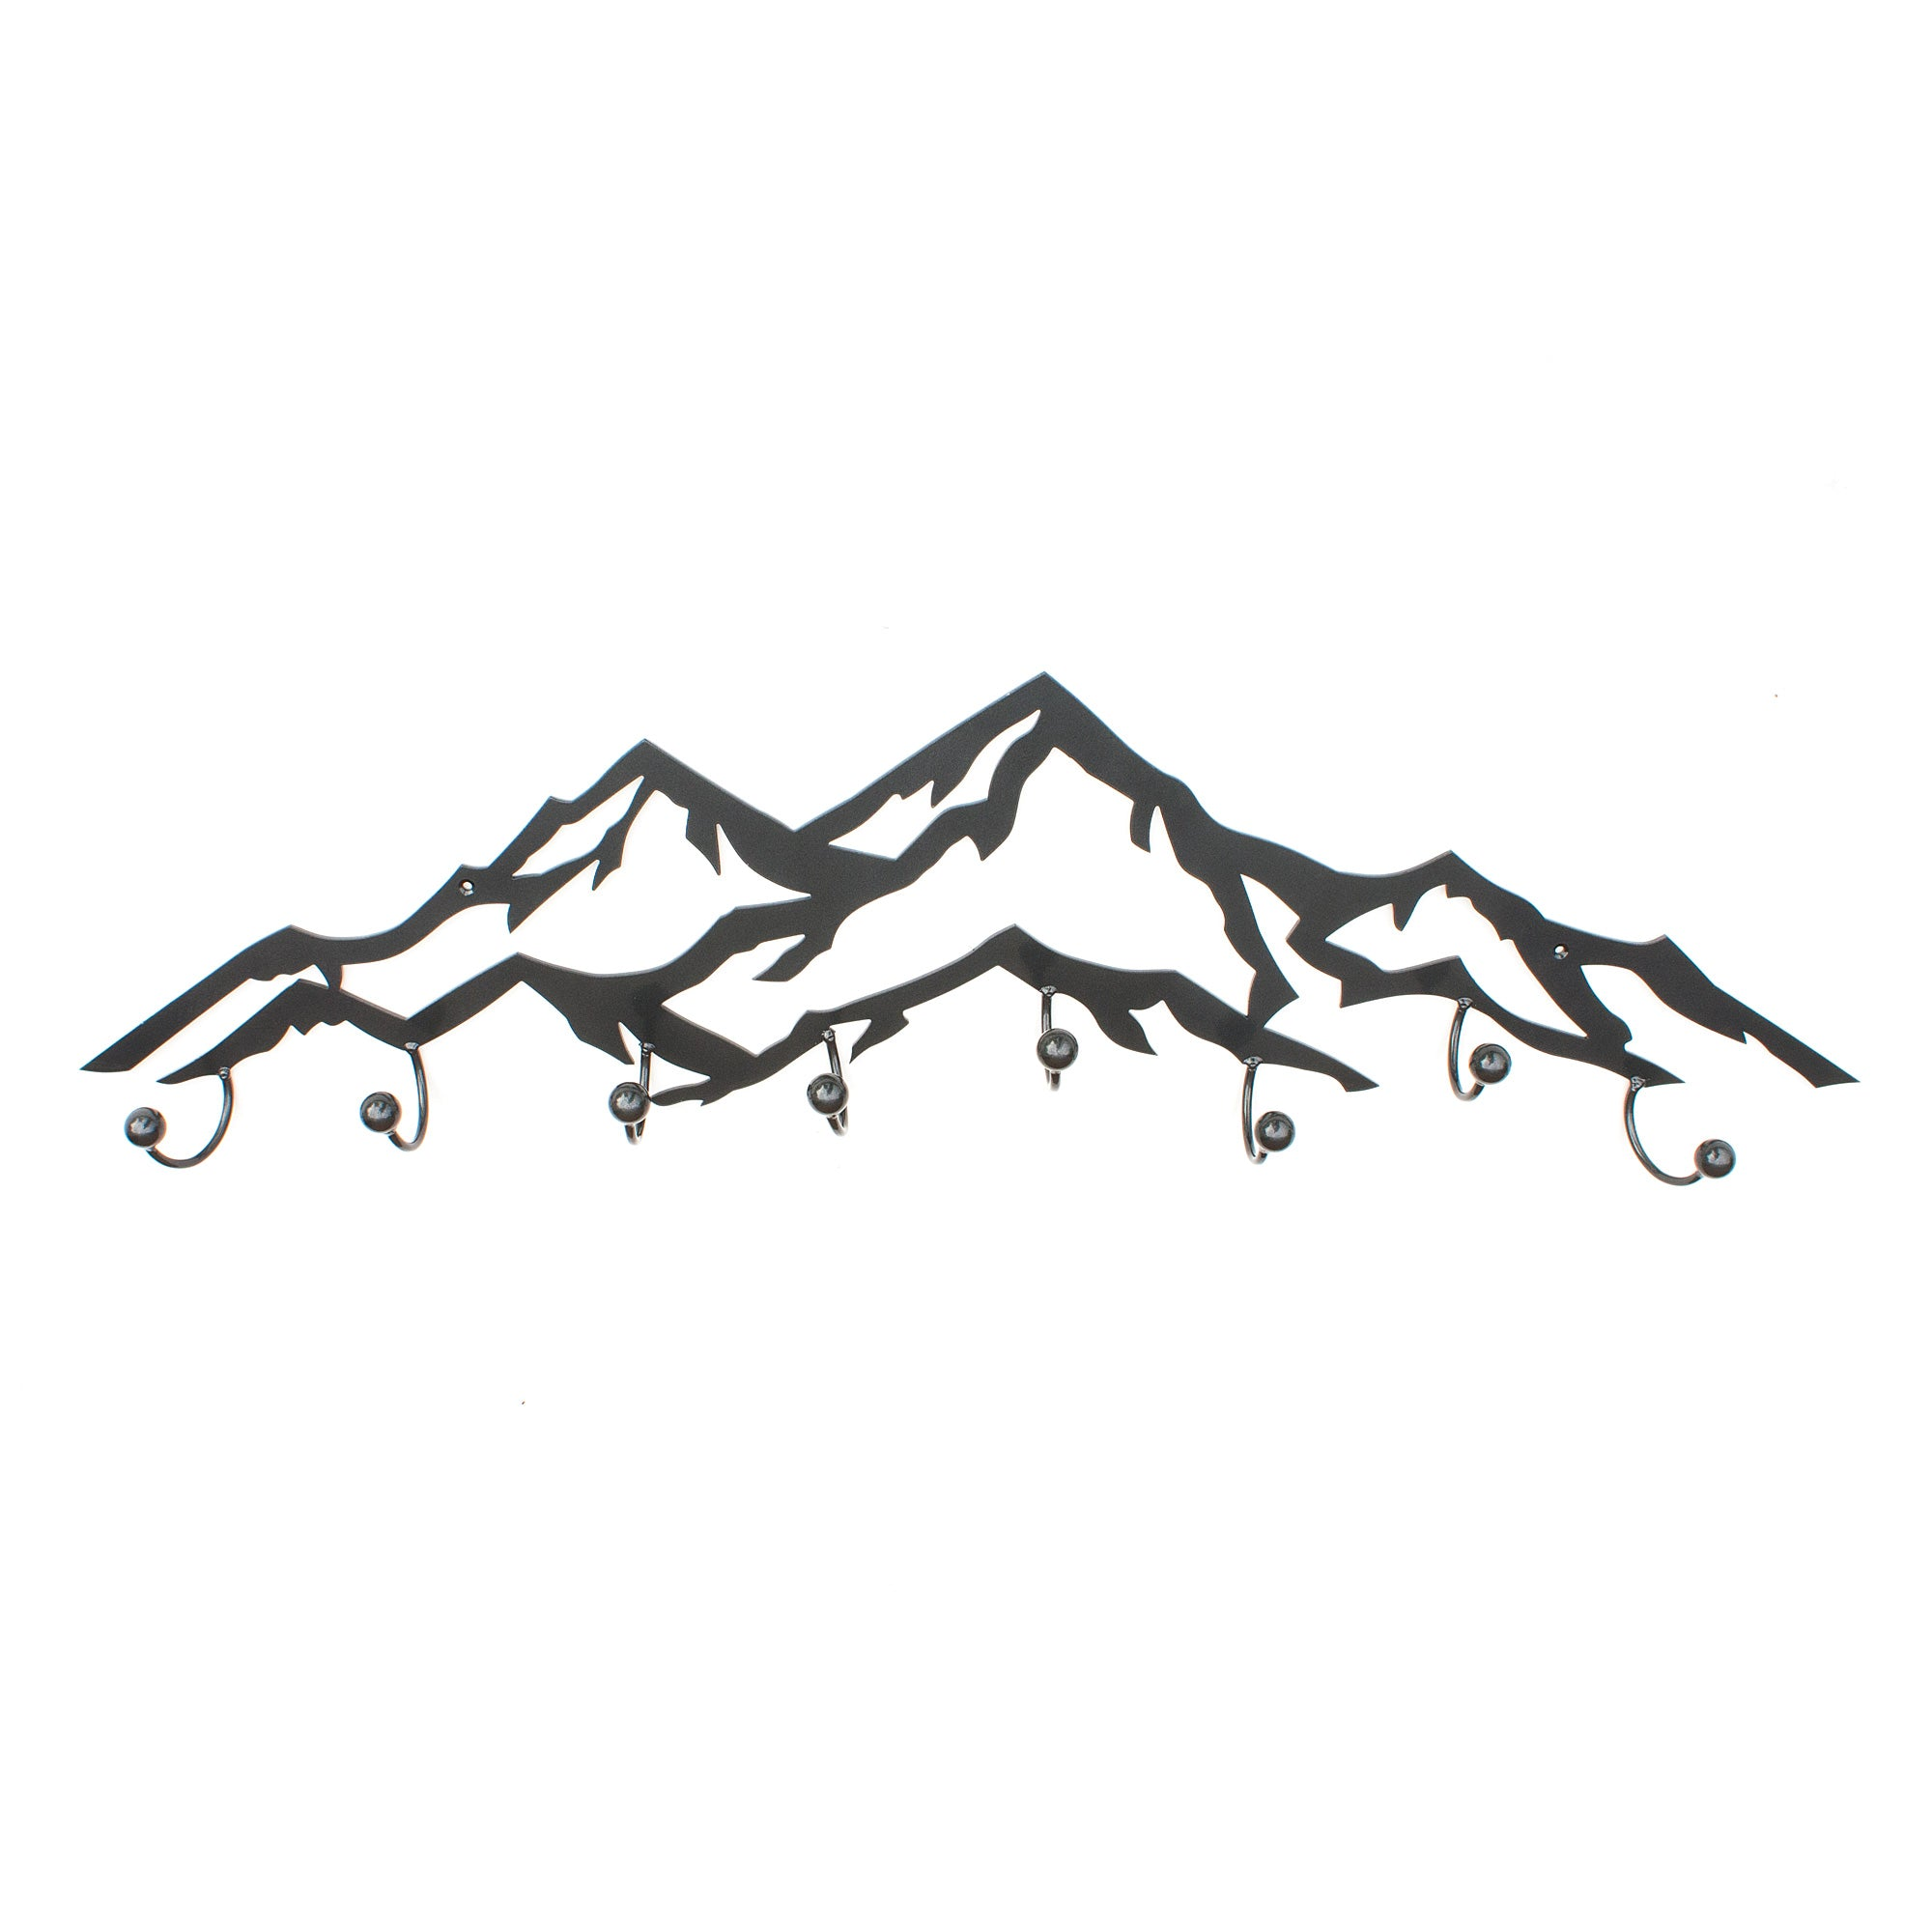 Metal Wall Art - Metal Mountains with hooks, Great for Coats and Towels, Great Housewarming or Birthday Gift